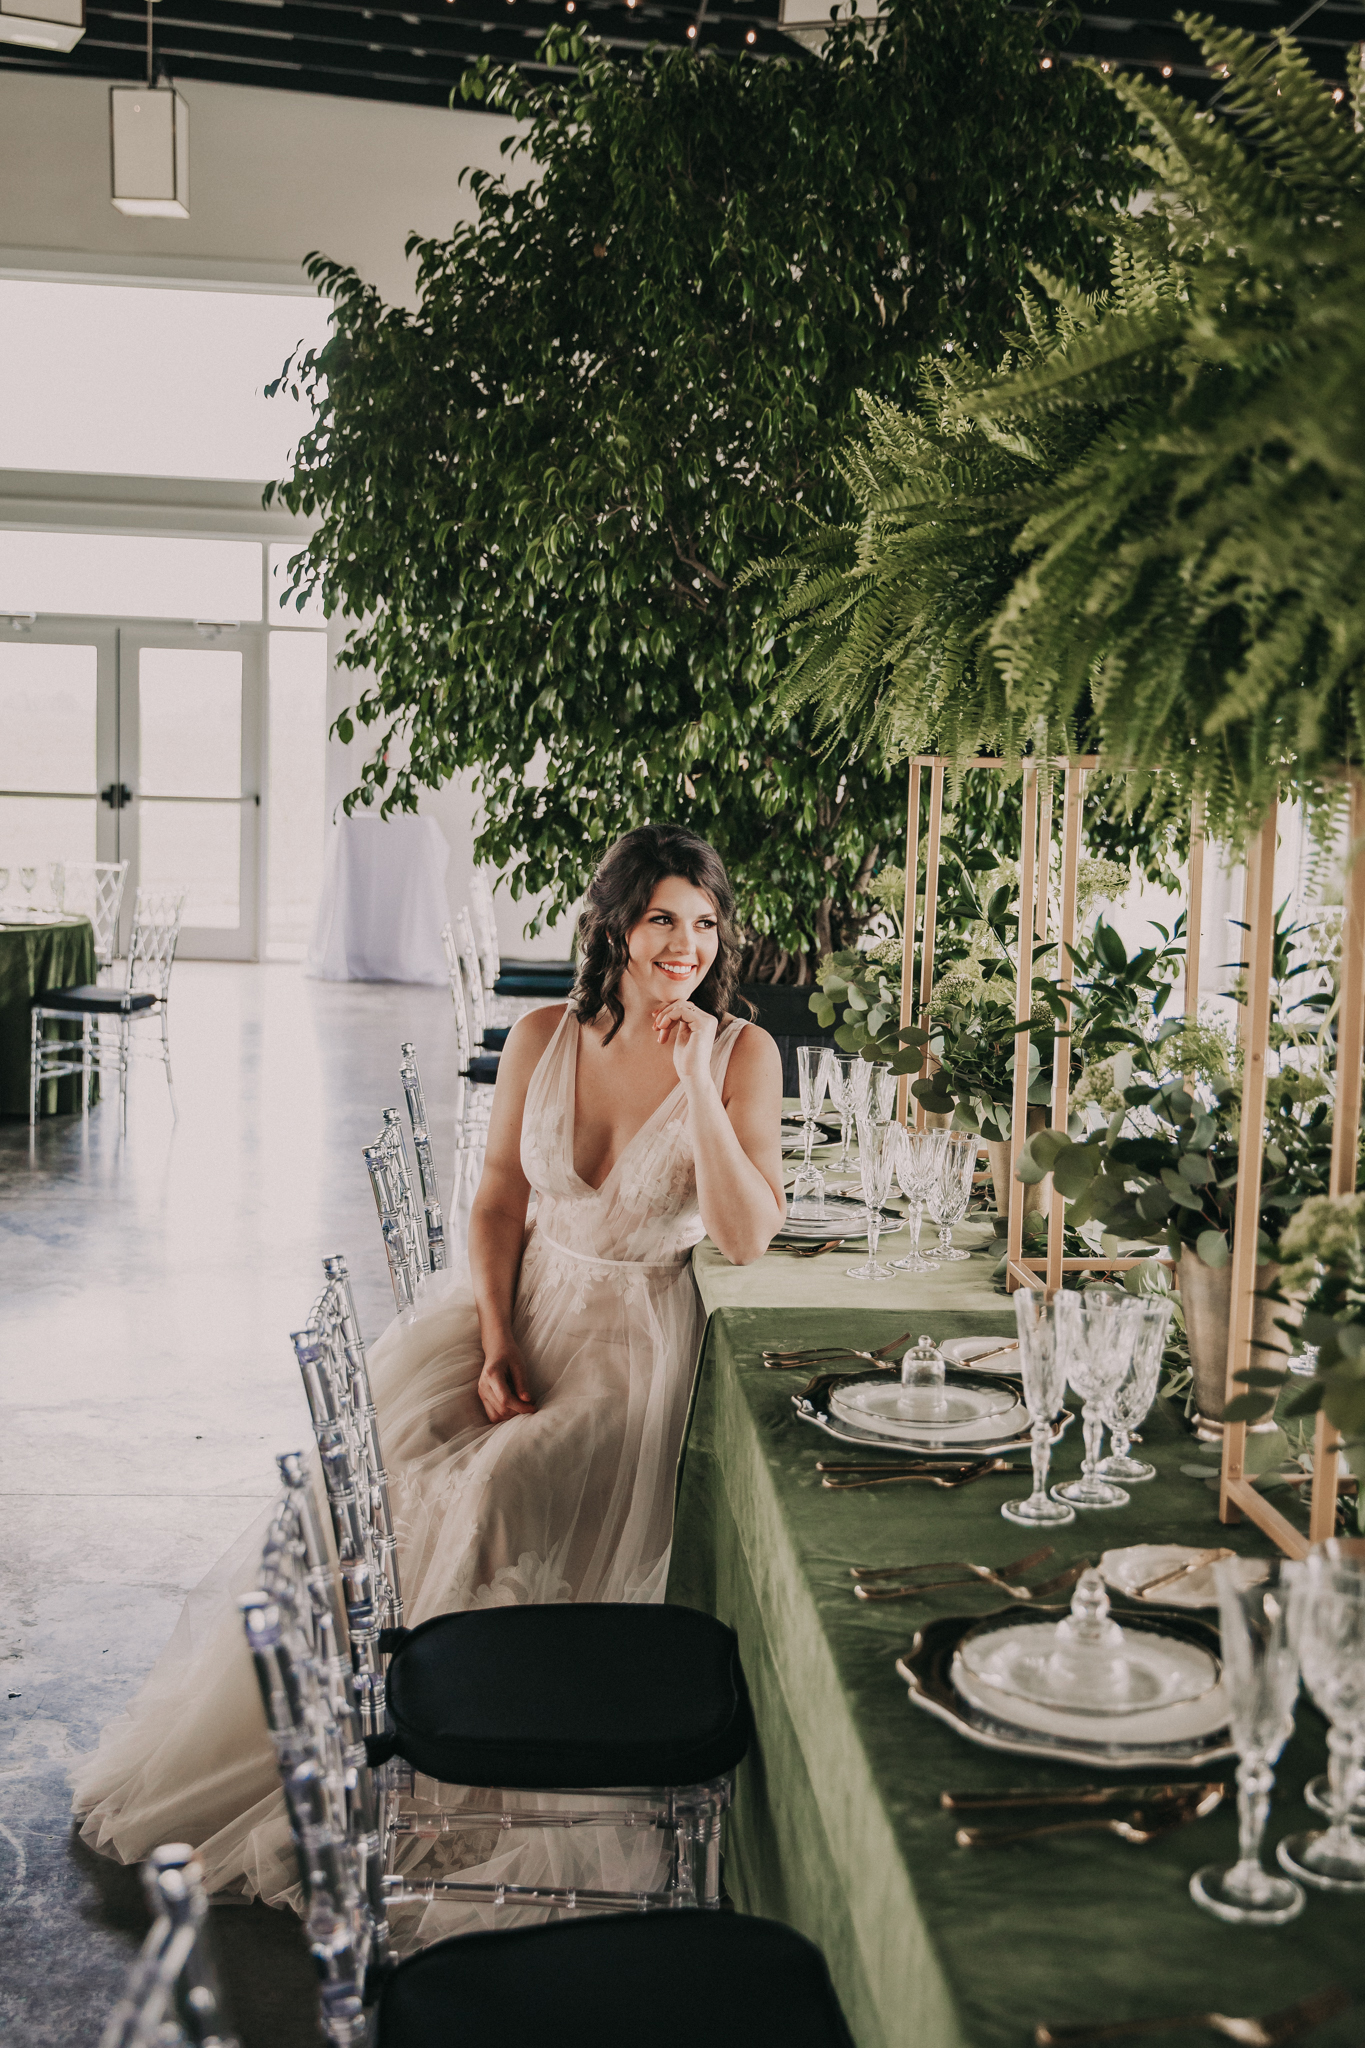 Bridal fashion: Shades of Green Legacy Styled Shoot by Music City Events and Billie-Shaye Style featured on Nashville Bride Guide